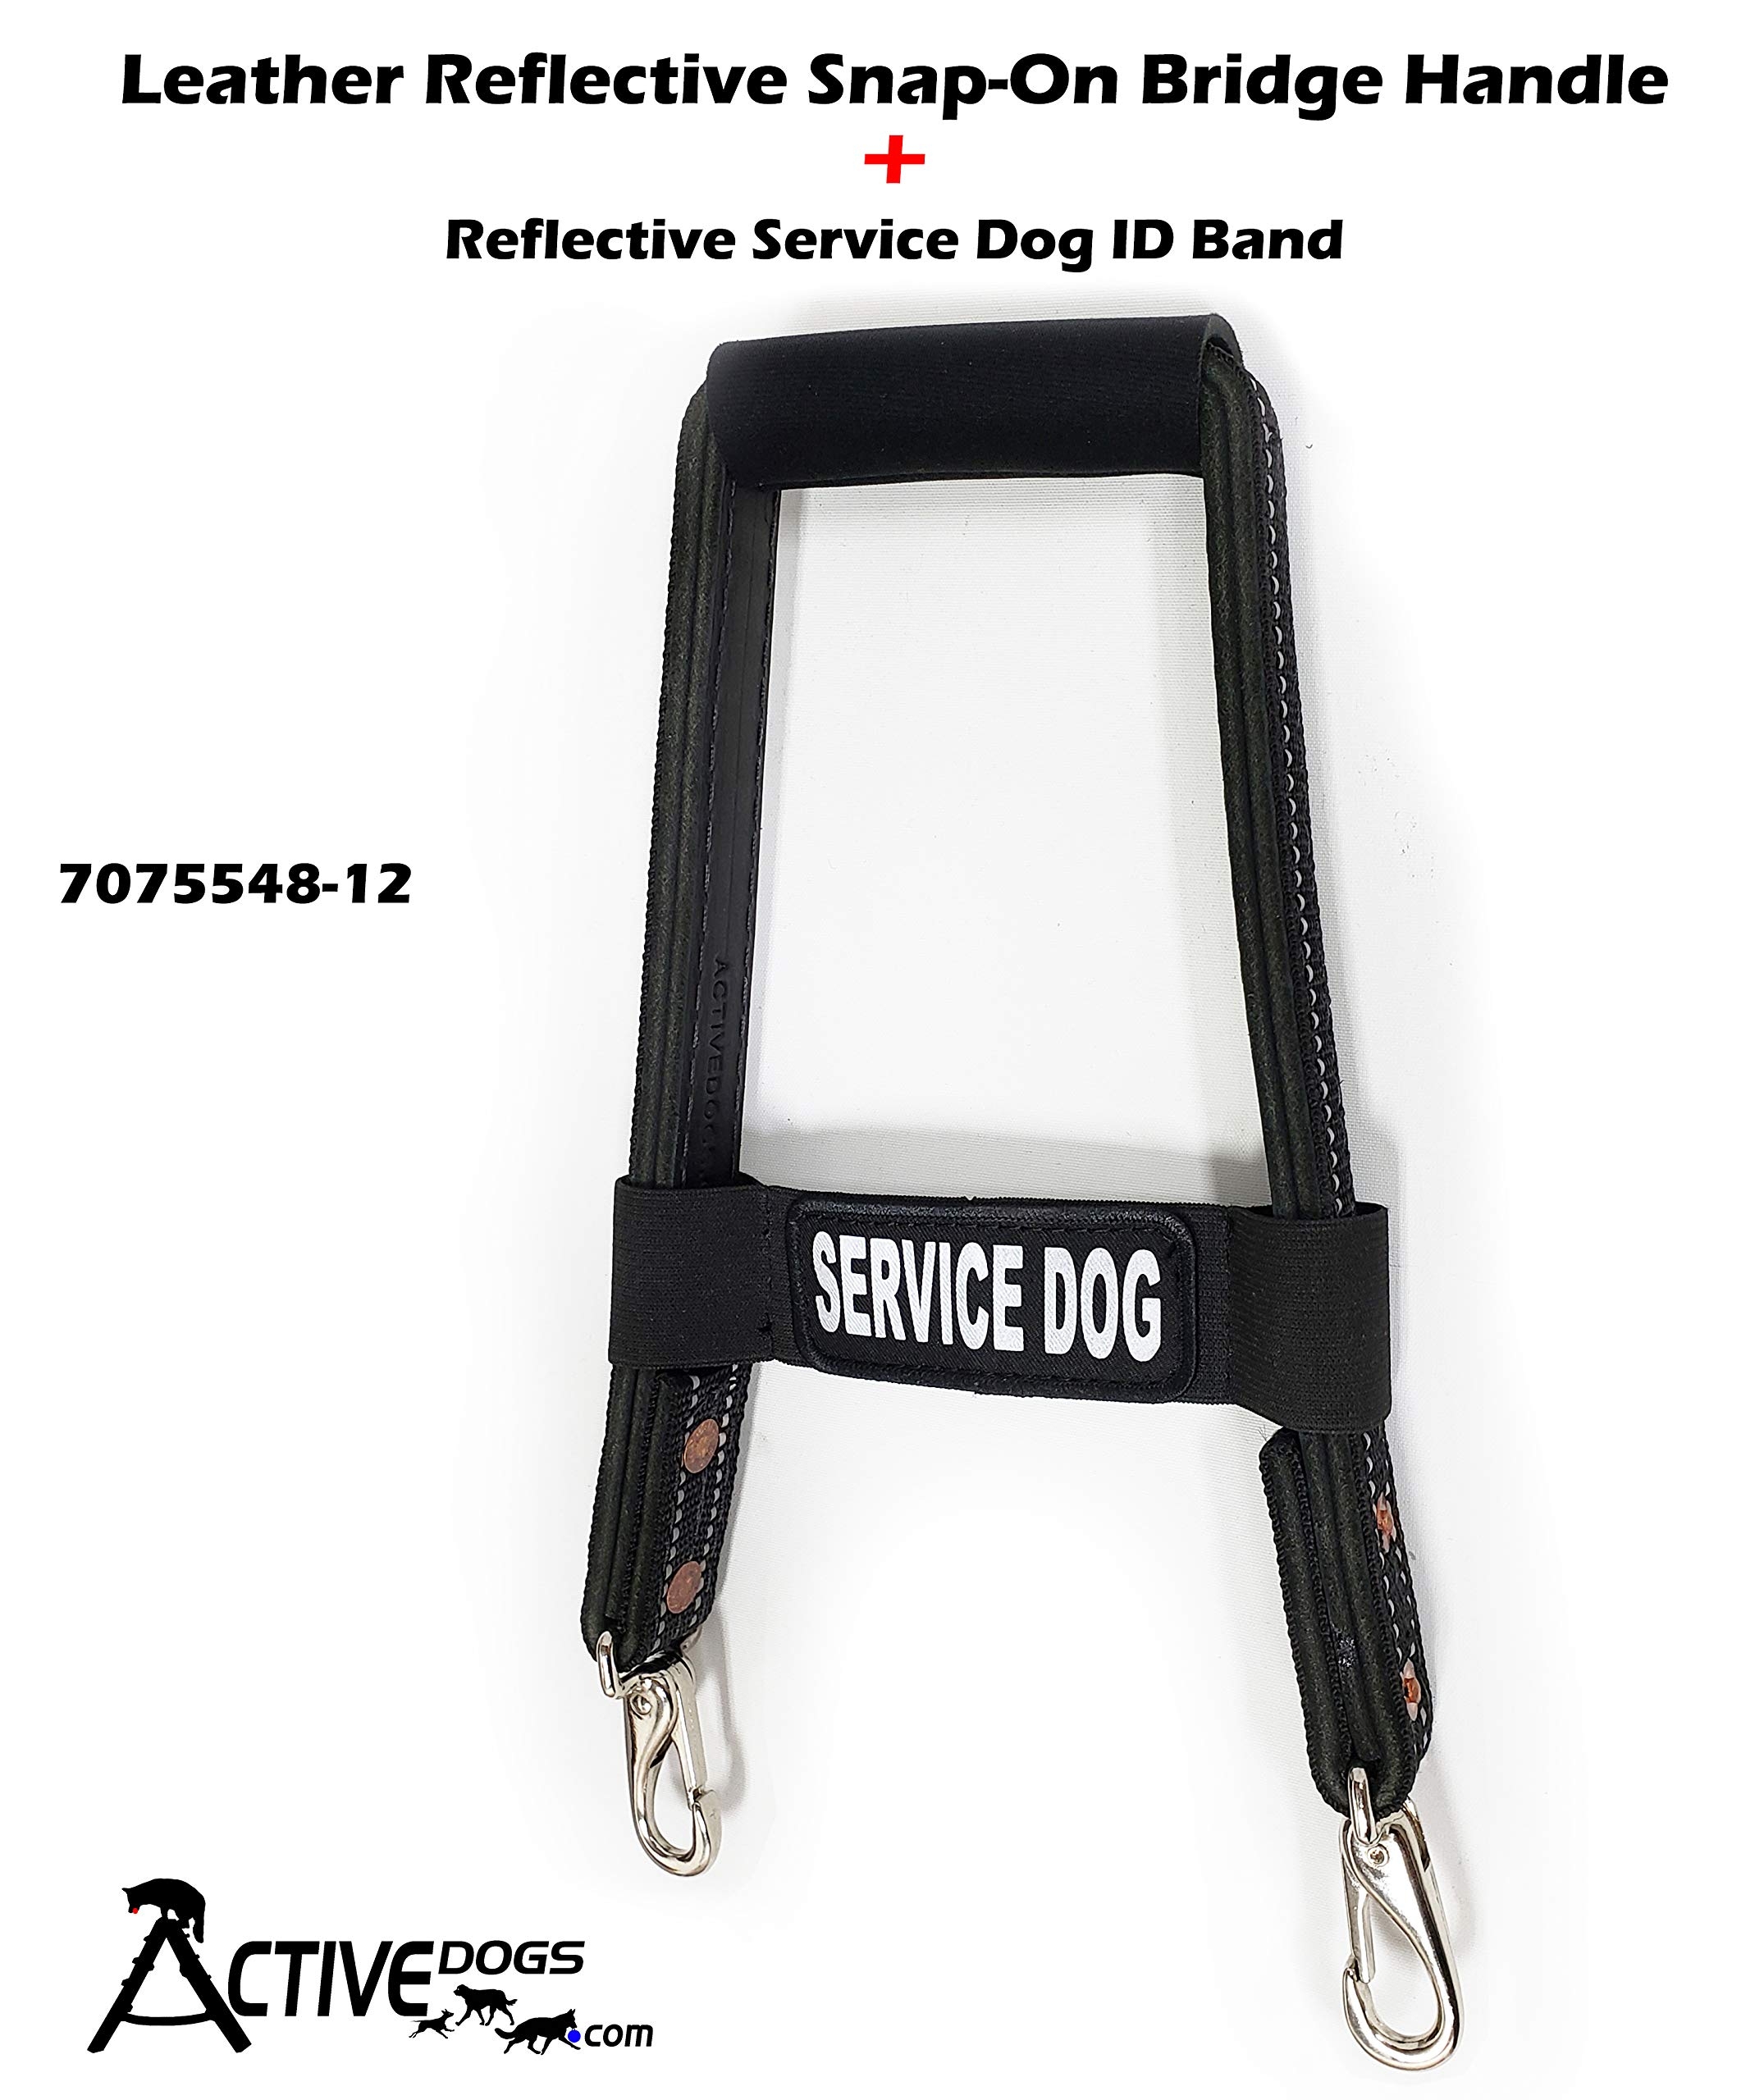 Activedogs Leather Reflective Snap-On Service Dog Bridge Handle + Reflective Service Dog ID Band (12'') by Activedogs